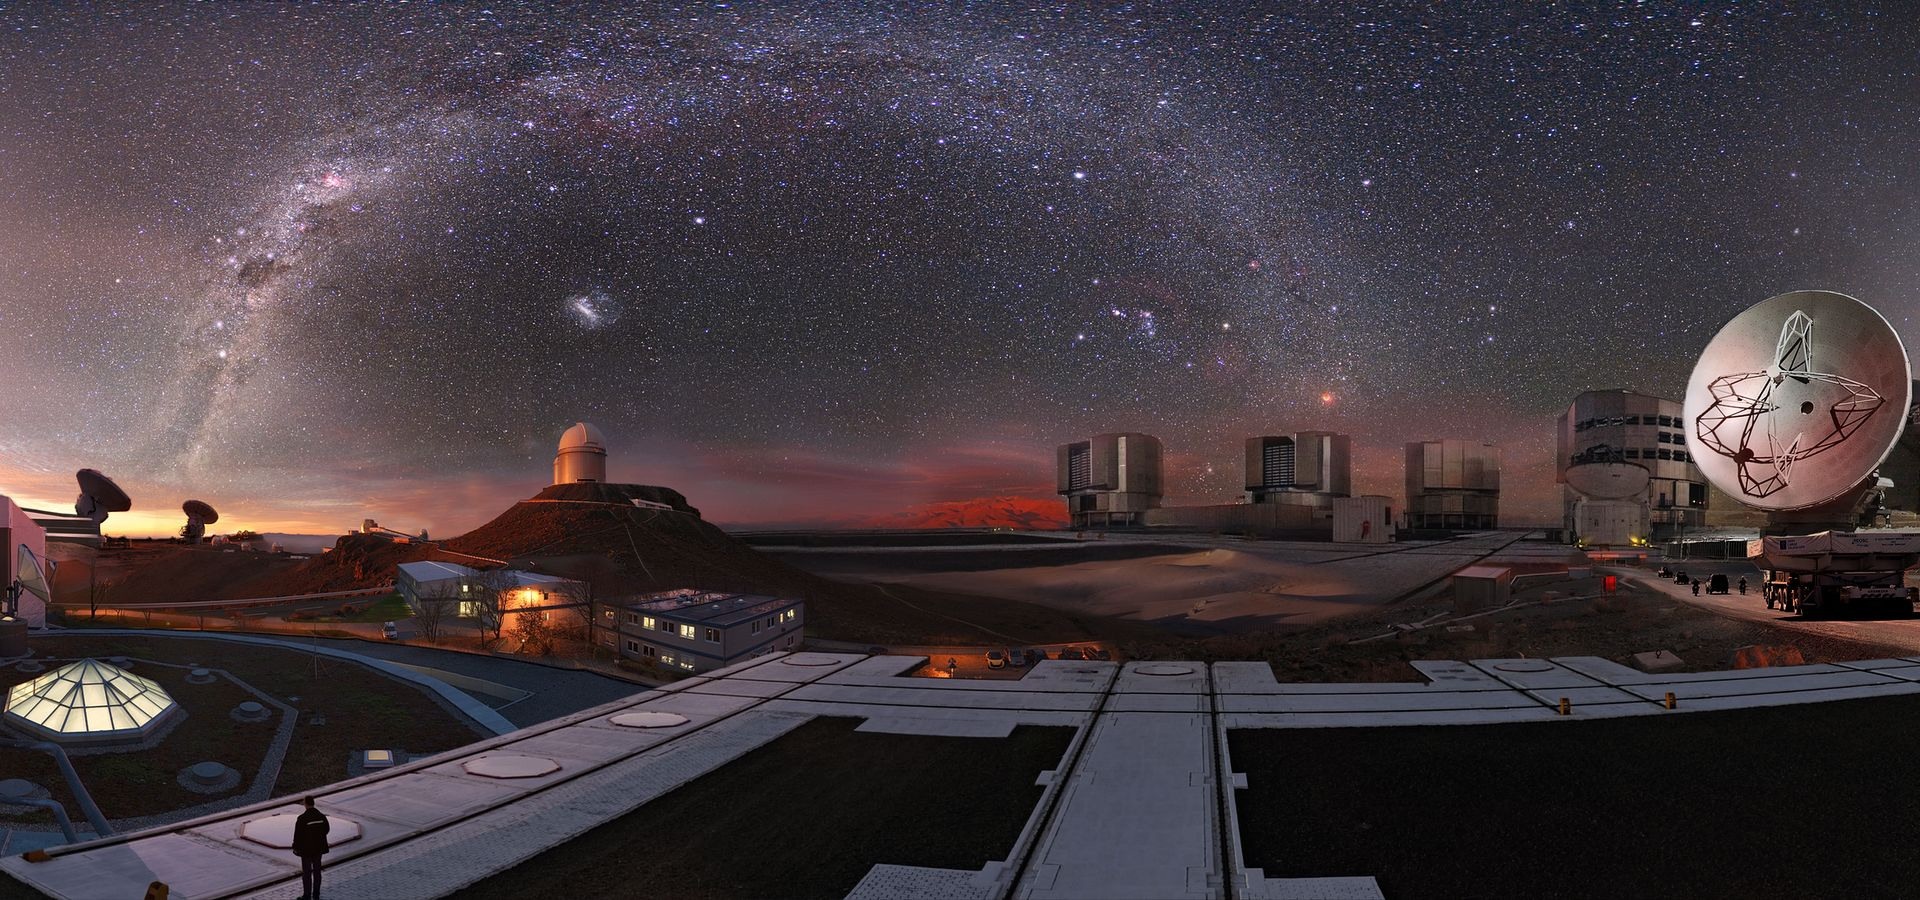 ESO's Training Programmes: Investing in the Future of Astronomy